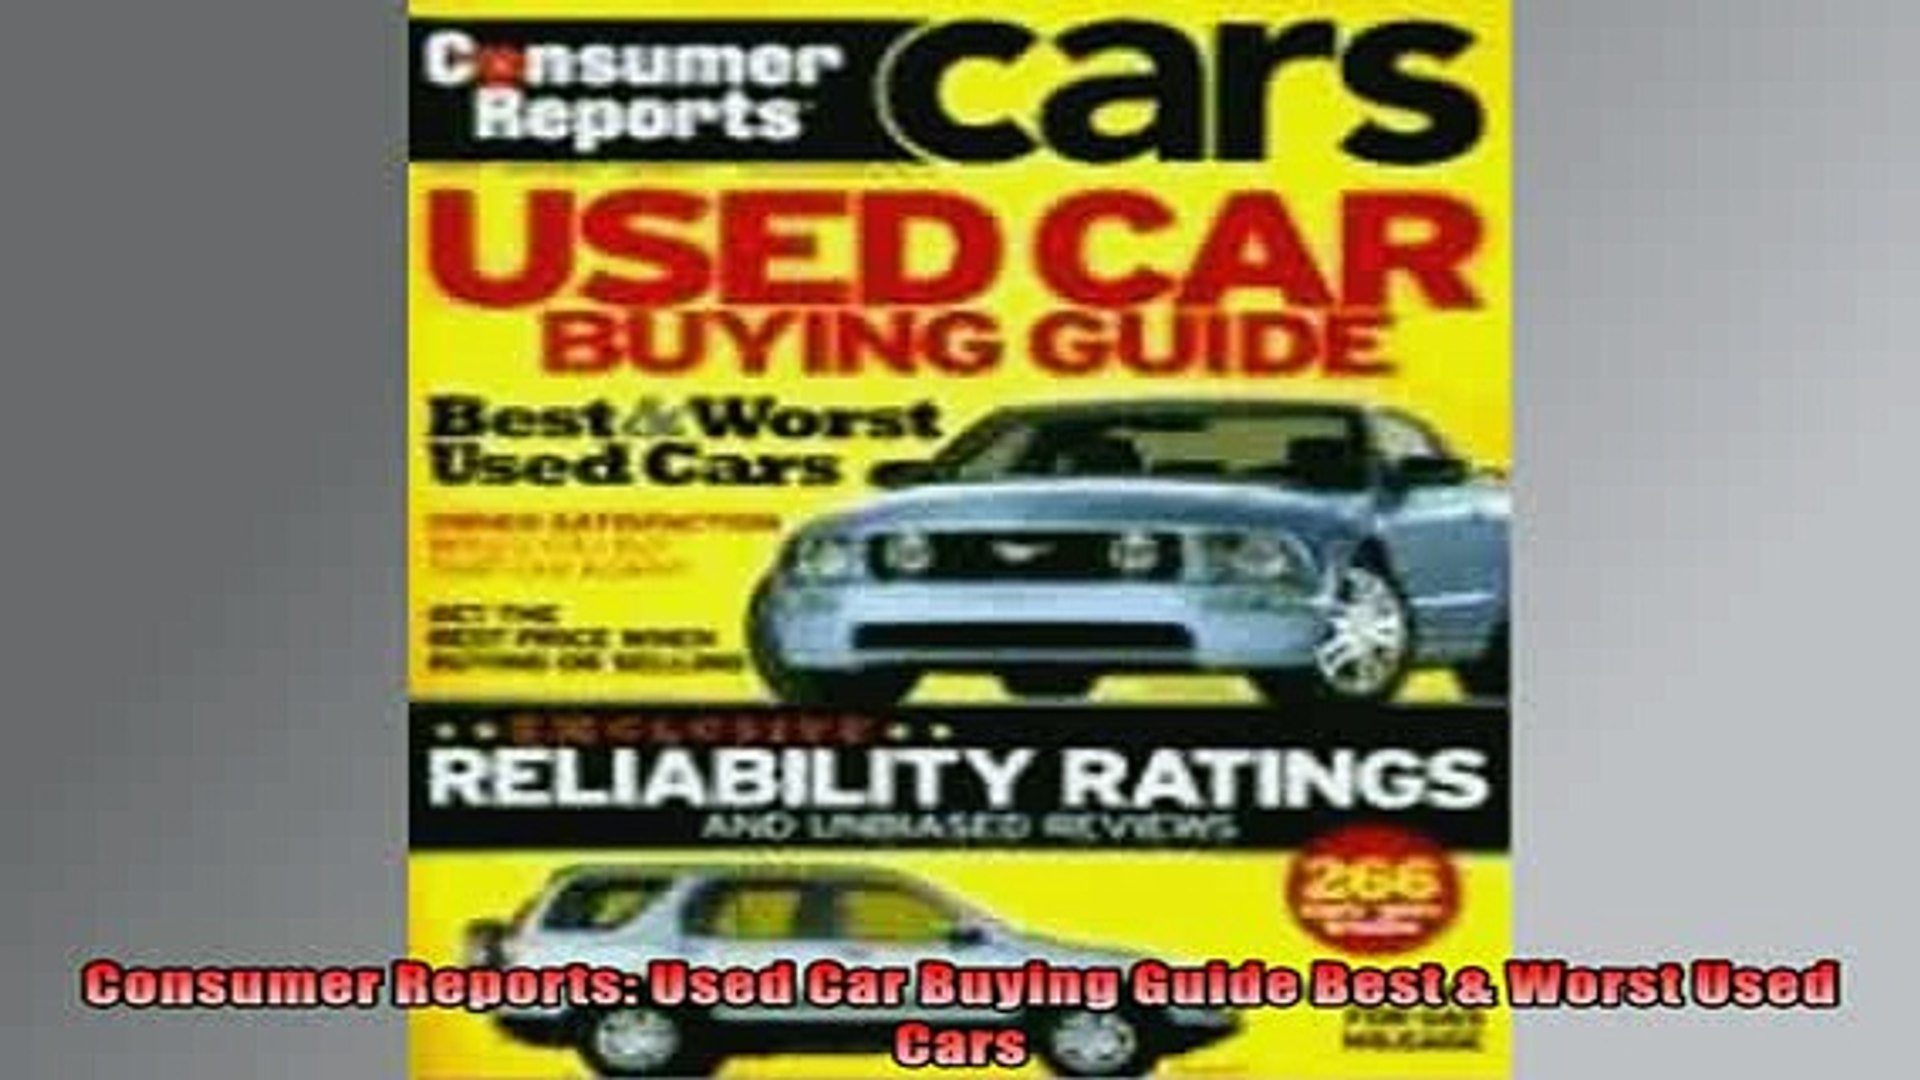 Worst Used Cars >> Free Pdf Downlaod Consumer Reports Used Car Buying Guide